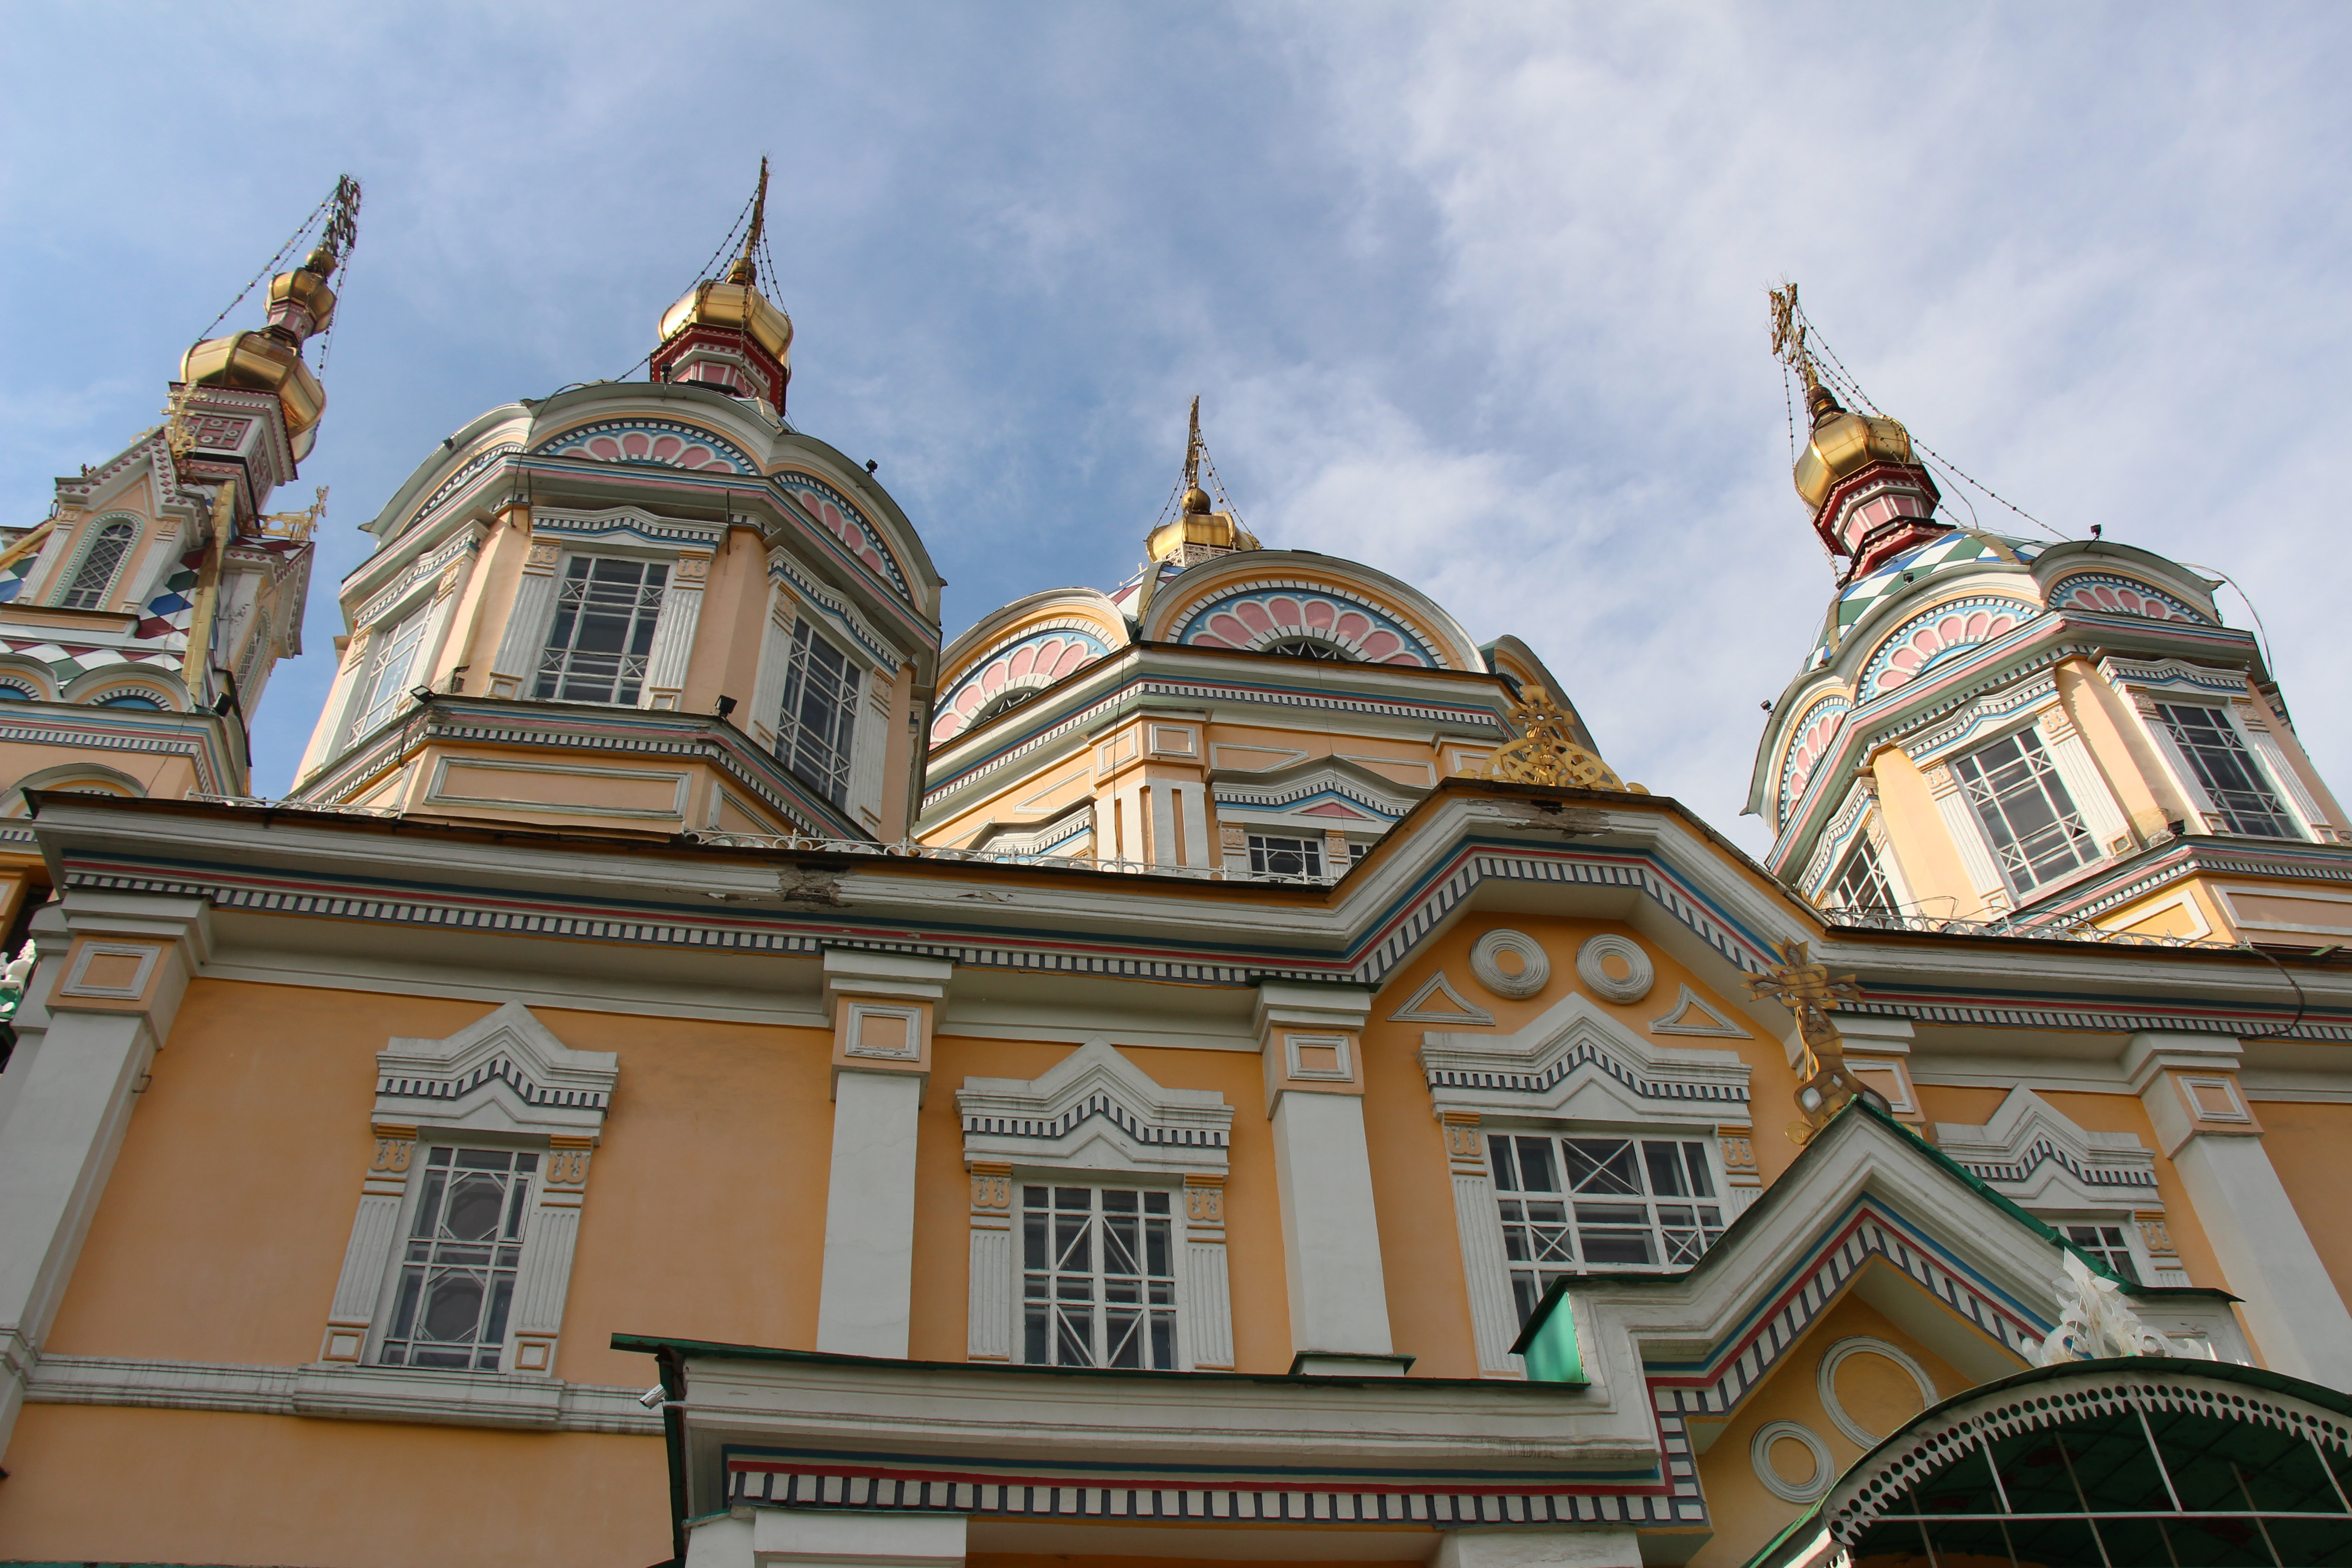 Zenkov Cathedral, the 2nd largest wooden Russian Orthodox Church.